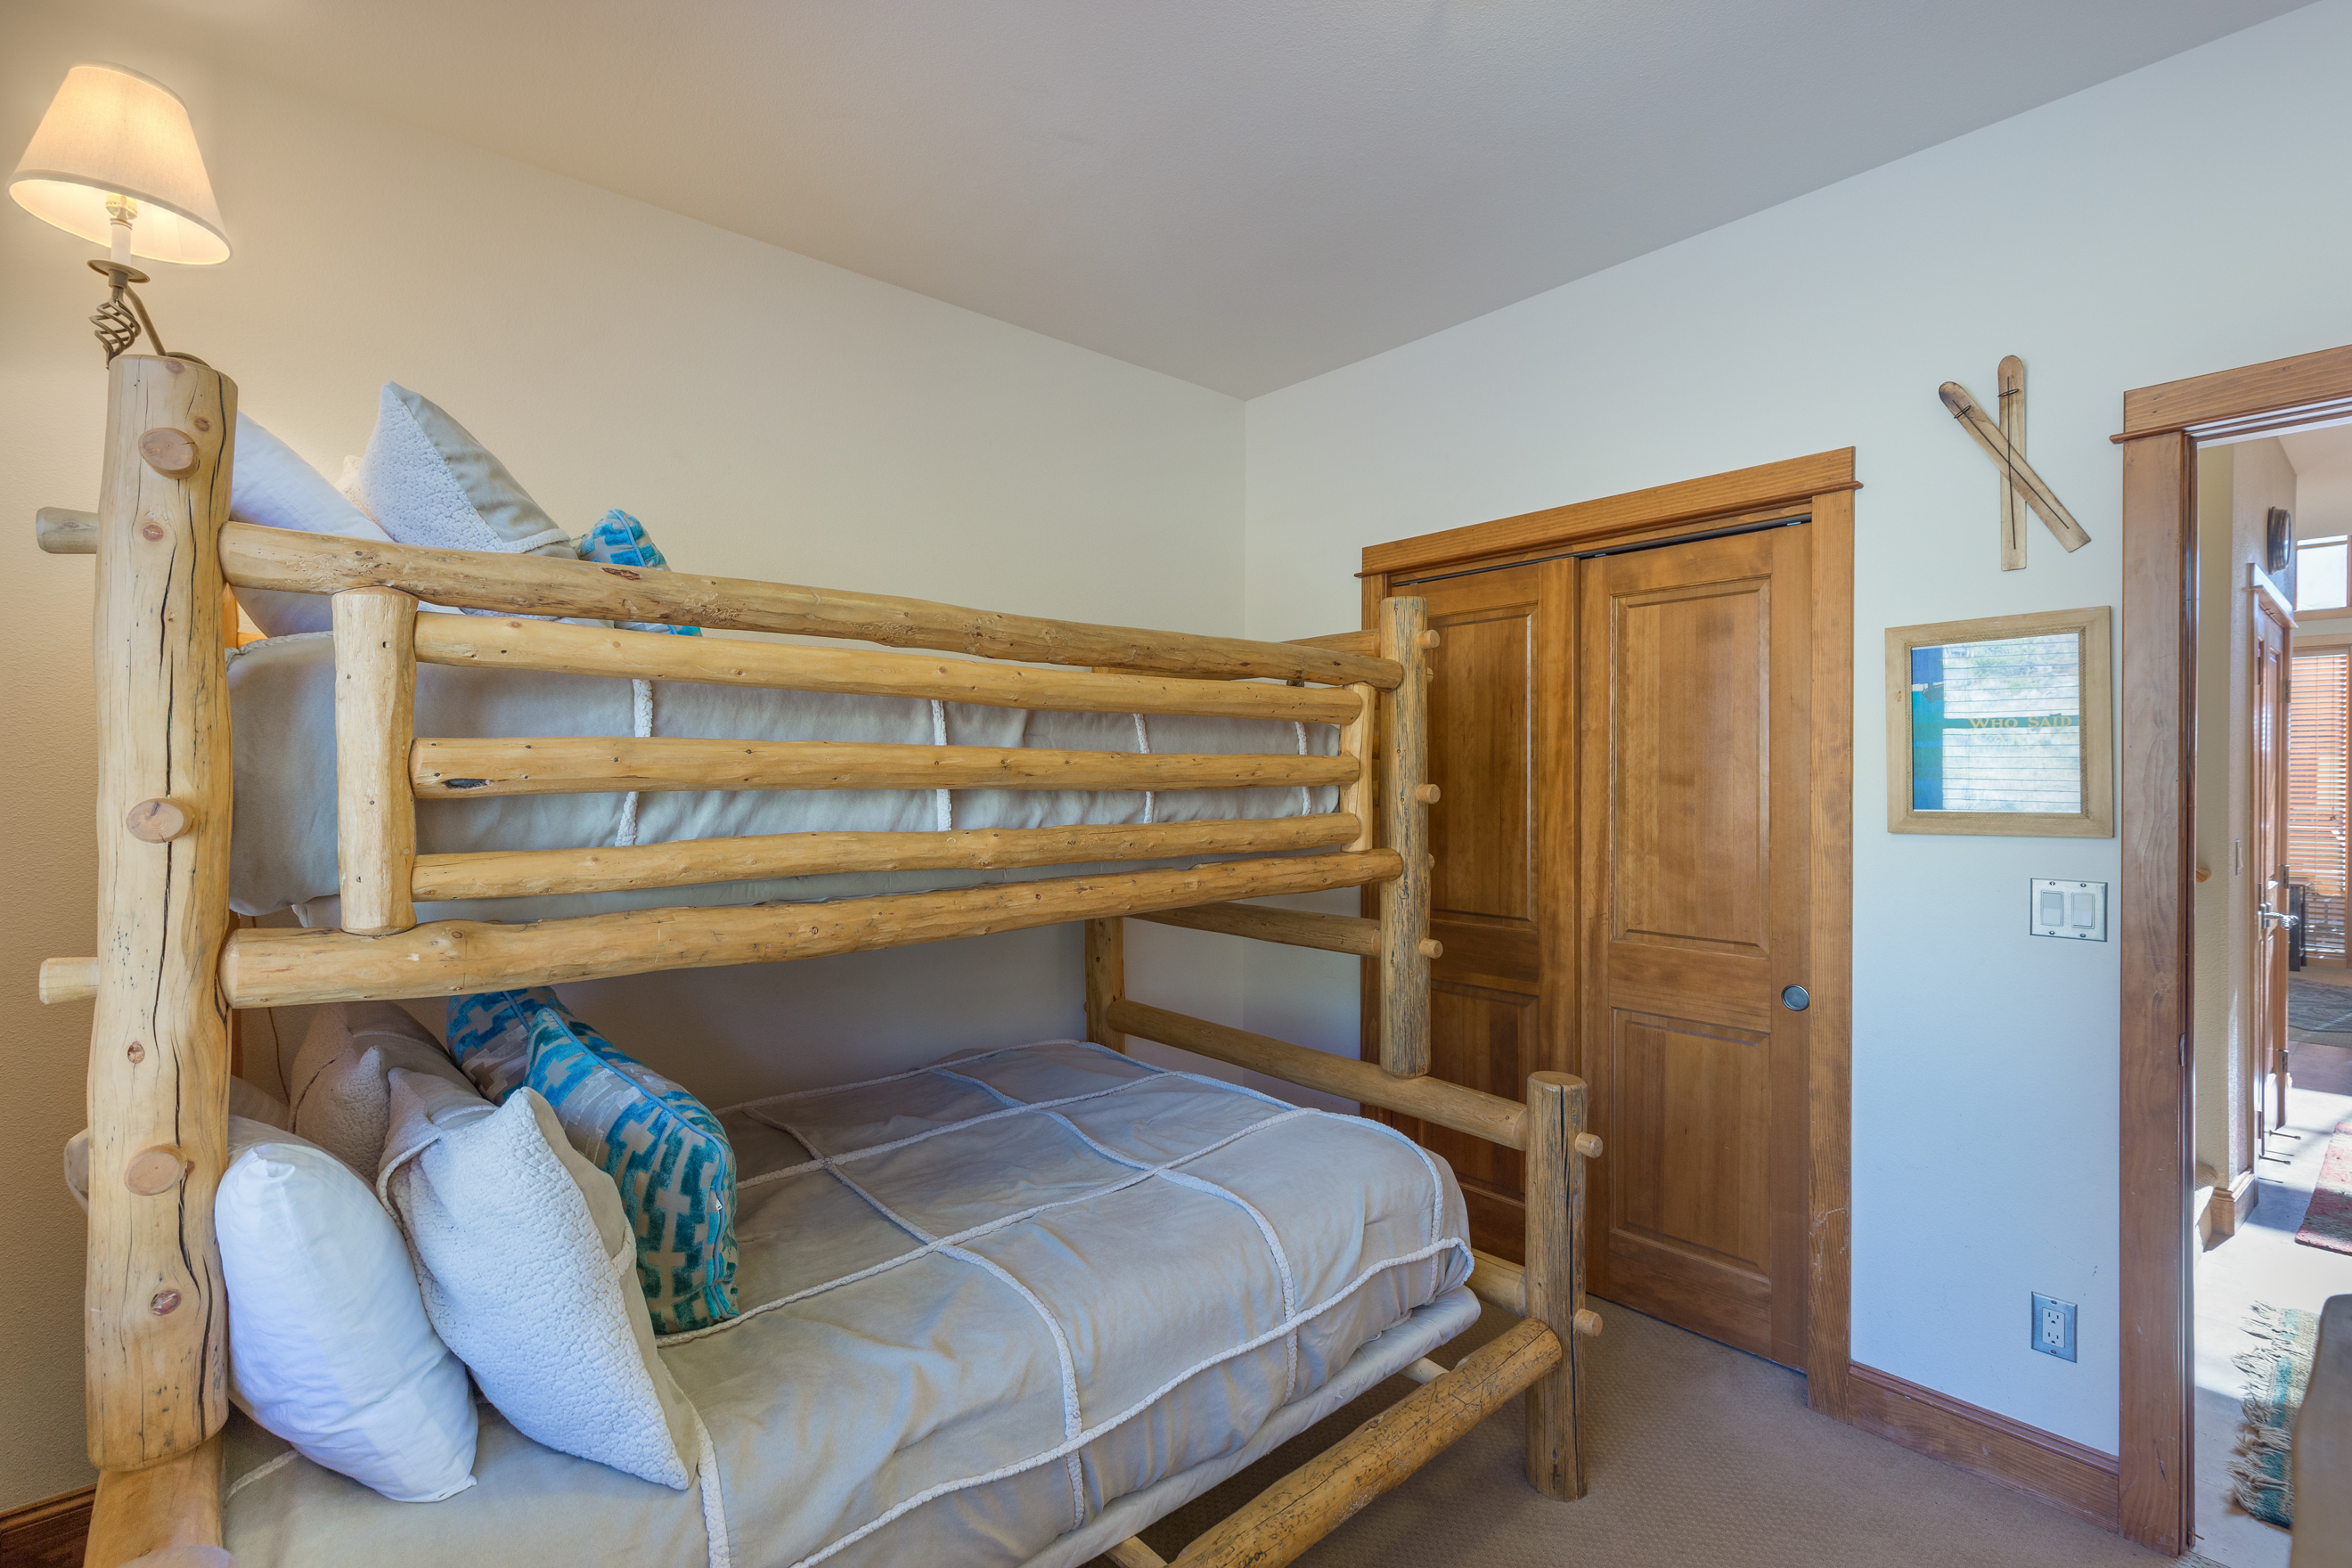 The second guest bedroom features a twin-over-full bunk bed.